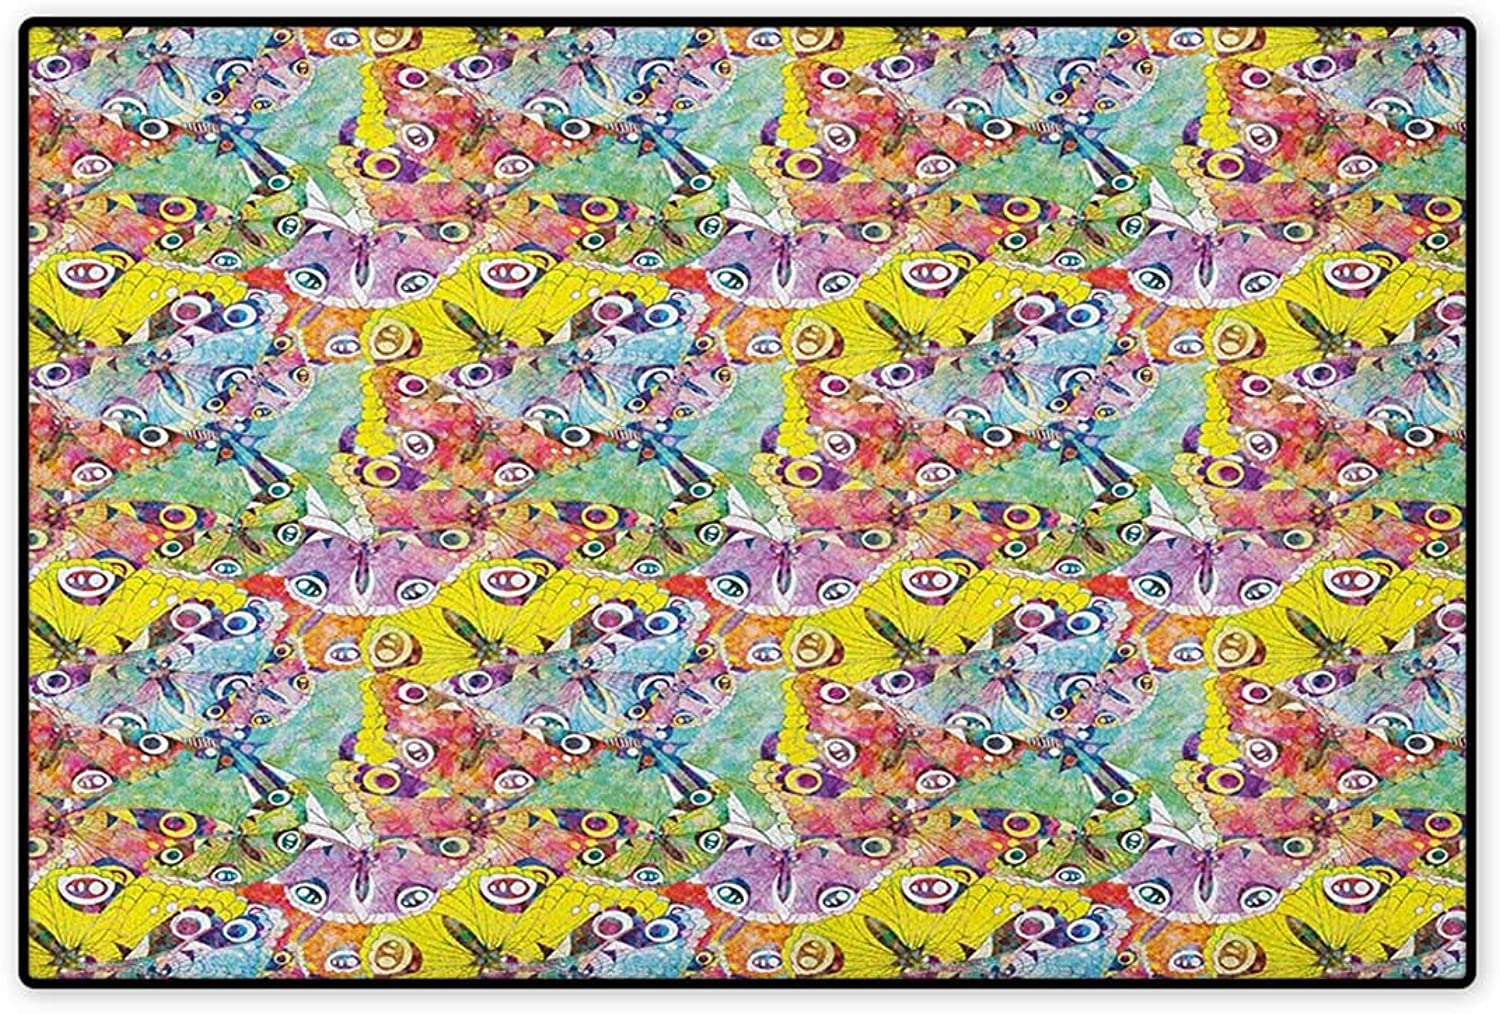 Butterfly,Door Mat Non Slip,colorful Butterflies an Assortment of Different Patterns Abstract Animal Image,Floor Mat for Tub,Multicolor,Size,32 x48  (W80cm x L120cm)